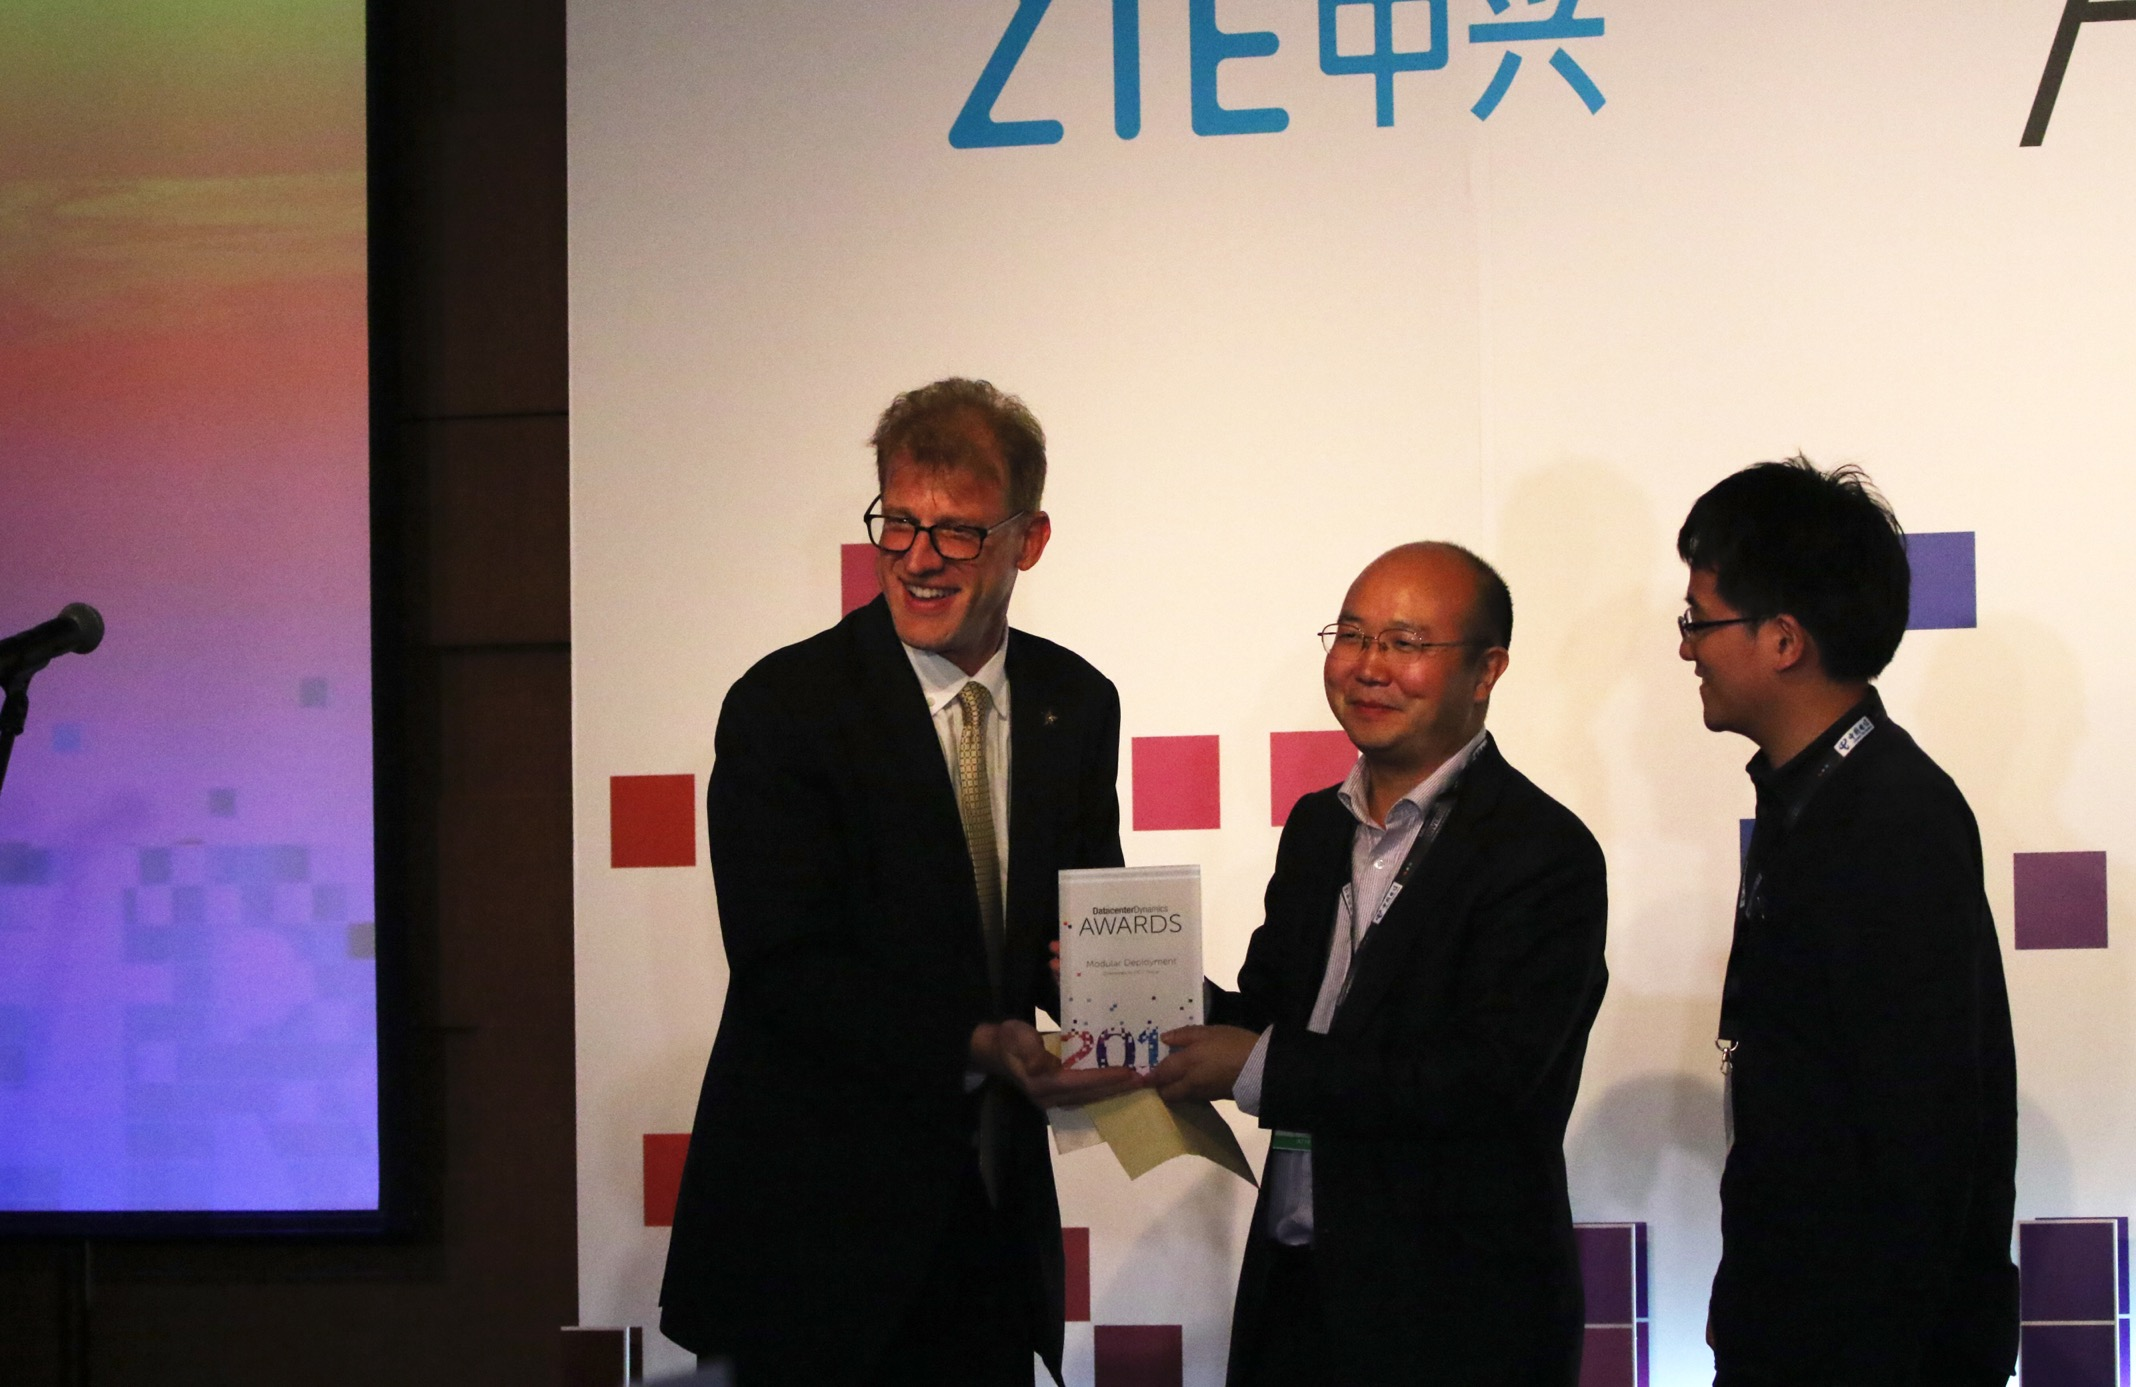 ZTE wins the DCD Internet Data Center and Modular Deplyment Awards